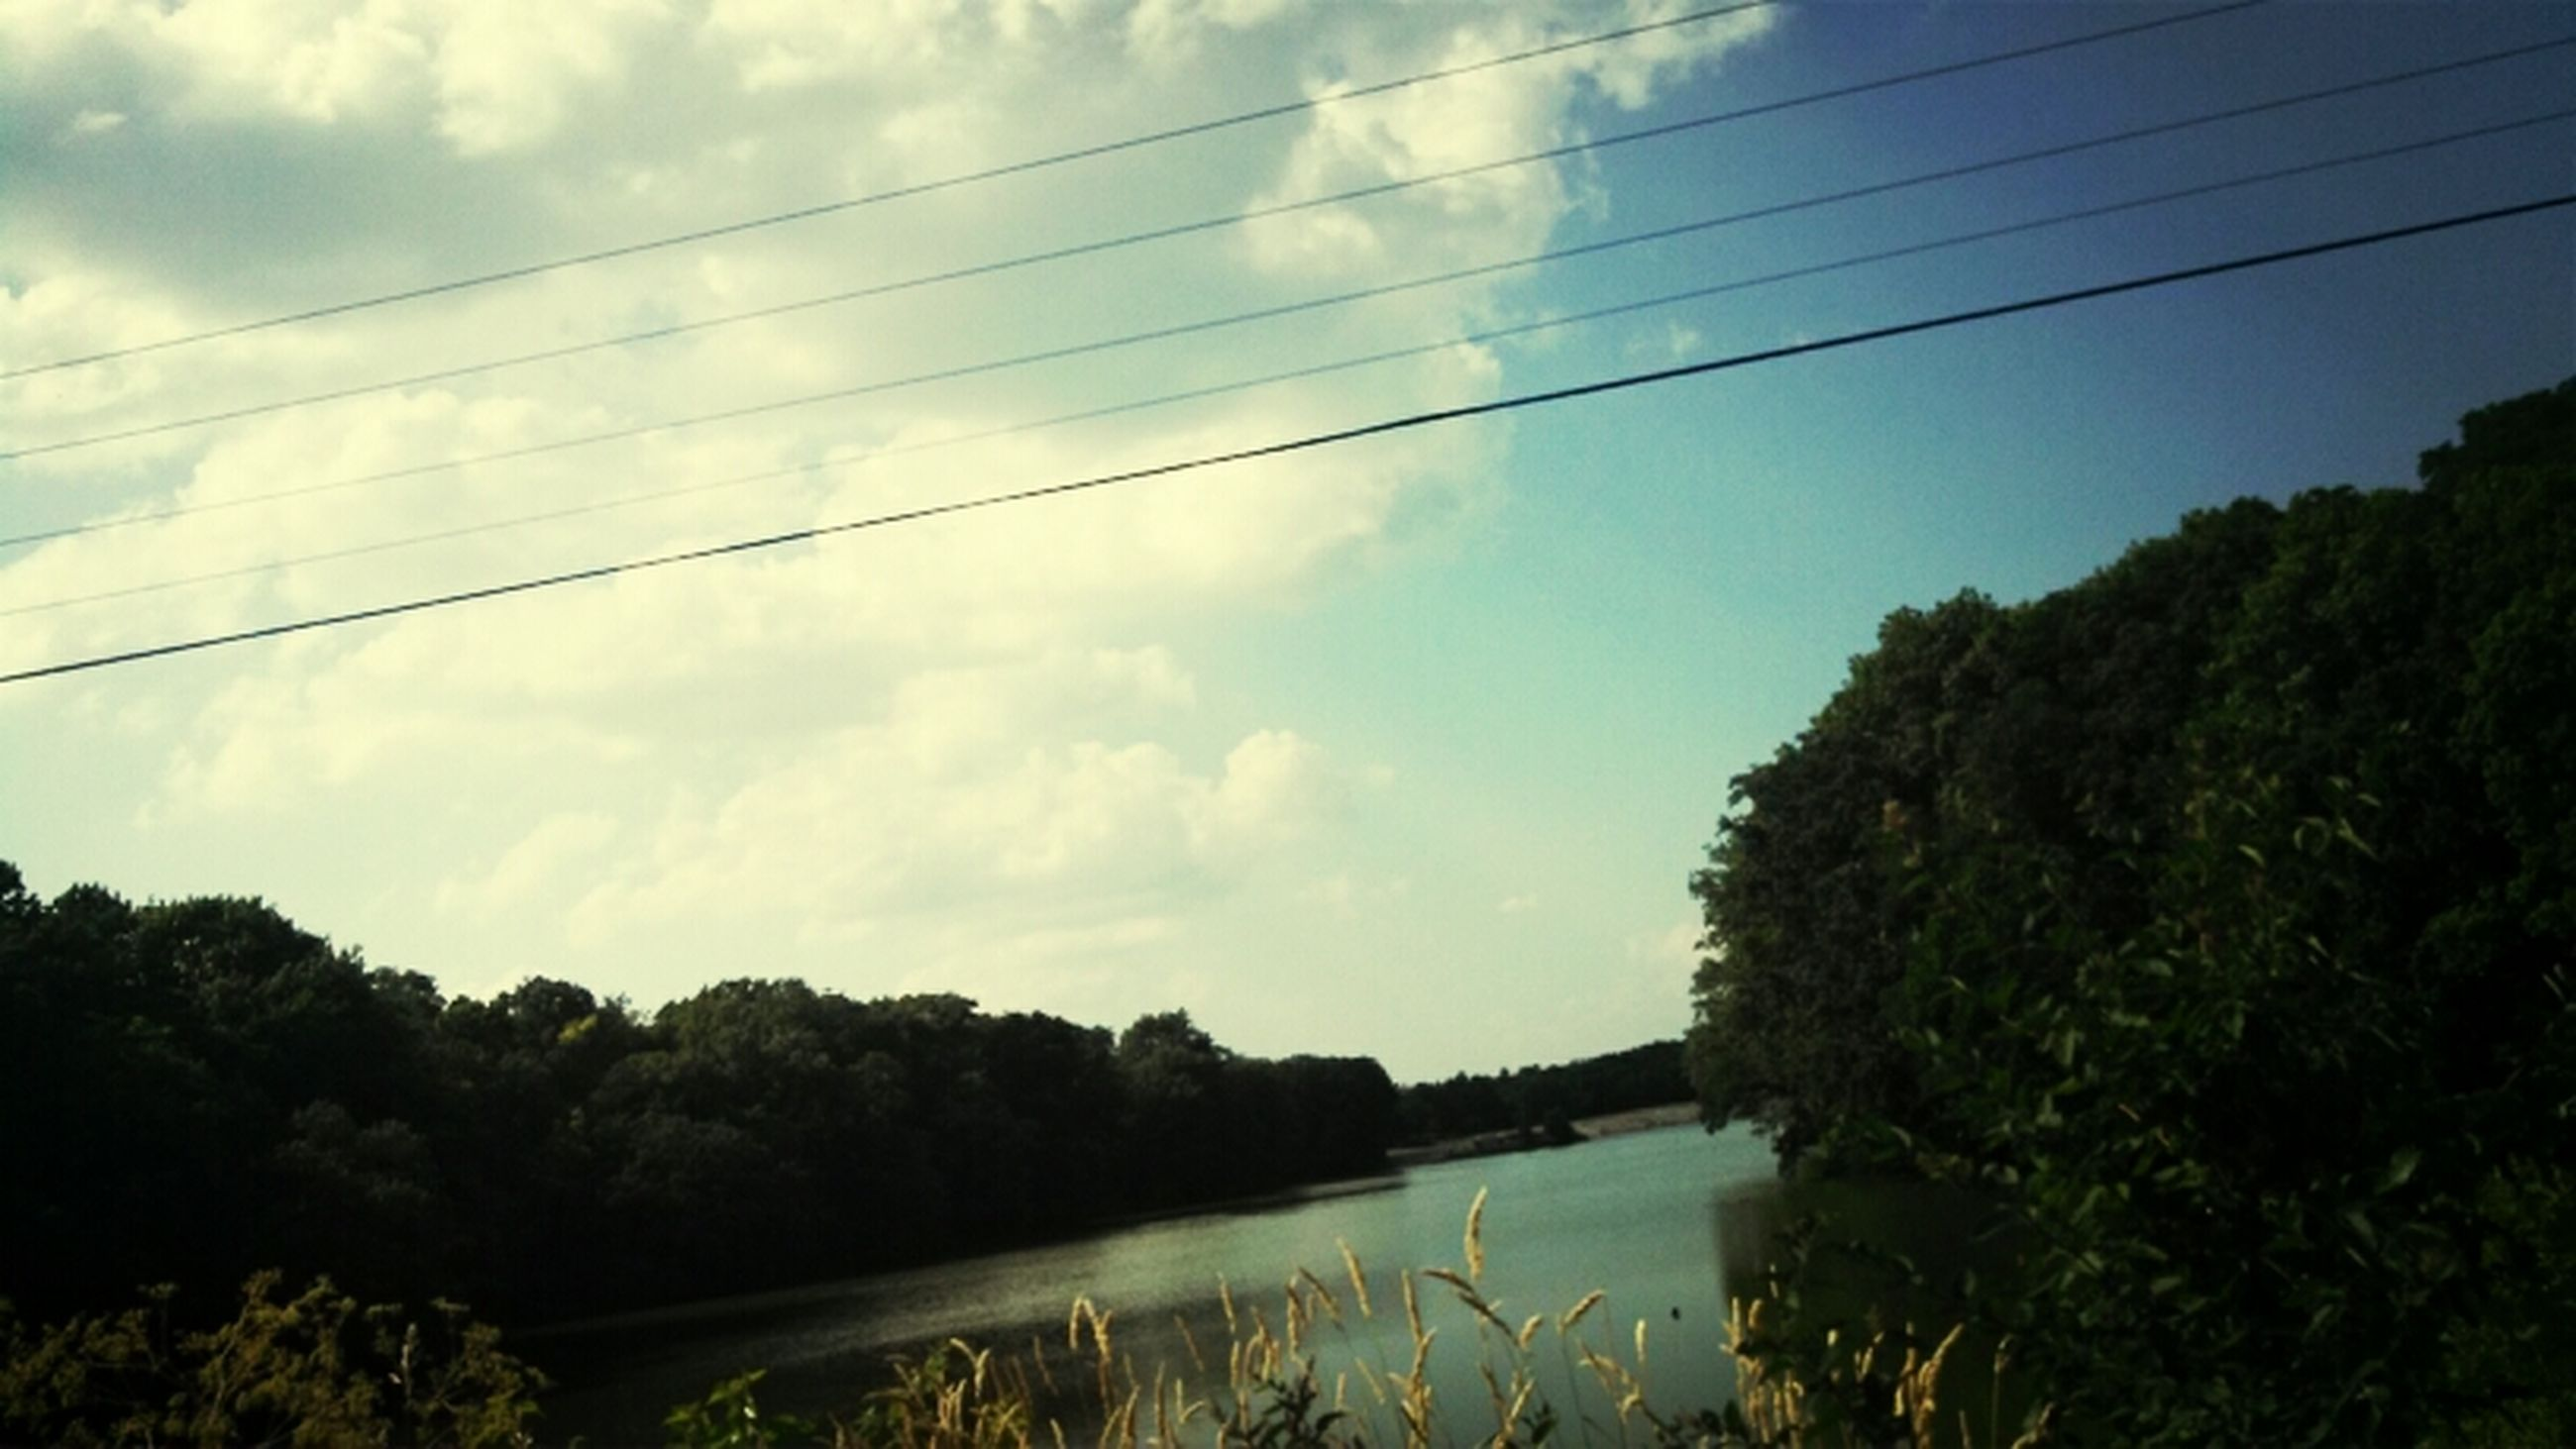 power line, electricity pylon, tree, sky, cable, connection, electricity, water, power supply, cloud - sky, tranquility, tranquil scene, nature, cloud, river, reflection, scenics, growth, power cable, beauty in nature